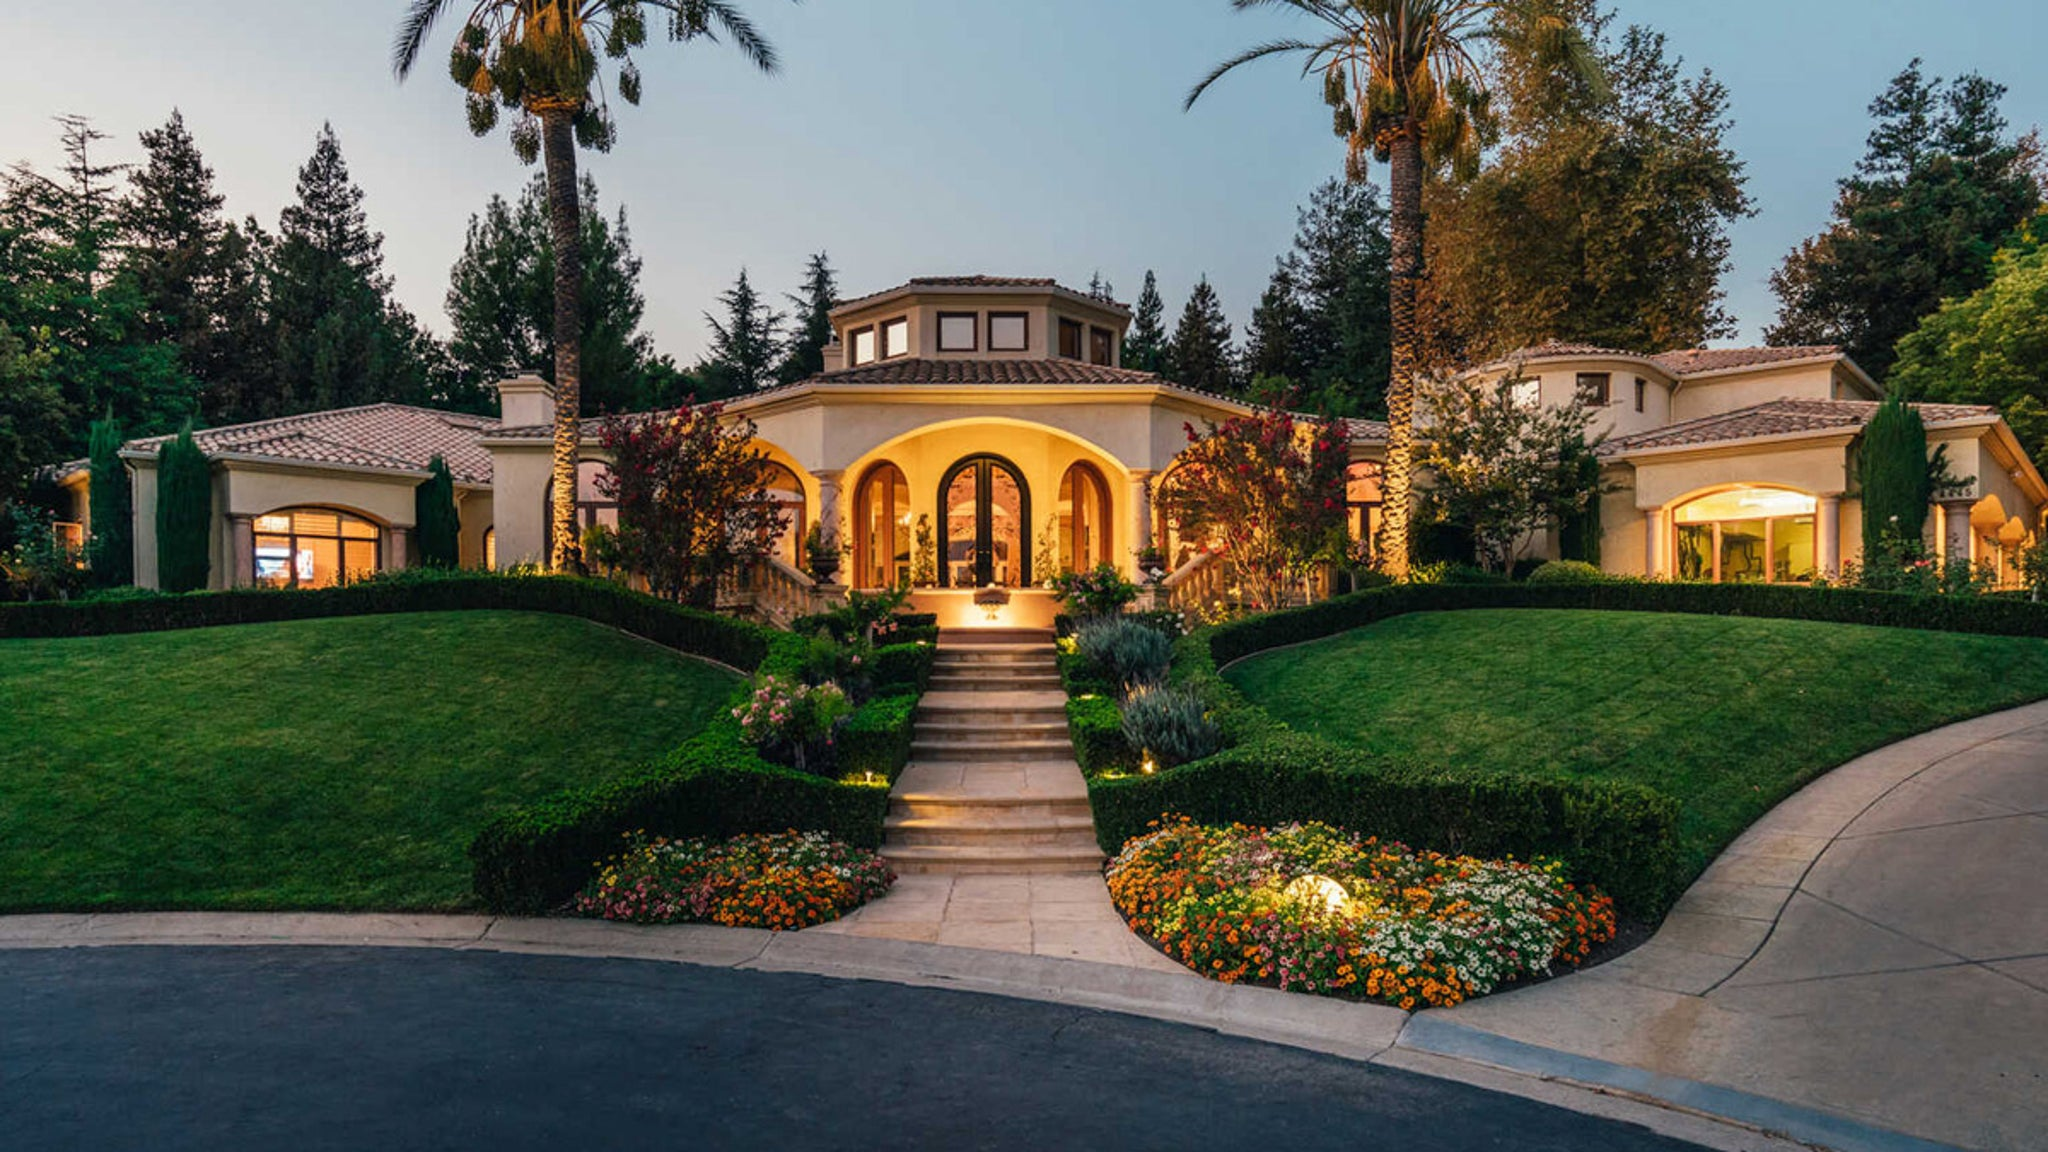 Mötley Crüe's Nikki Sixx Lists L.A. Home for $5.7 Million